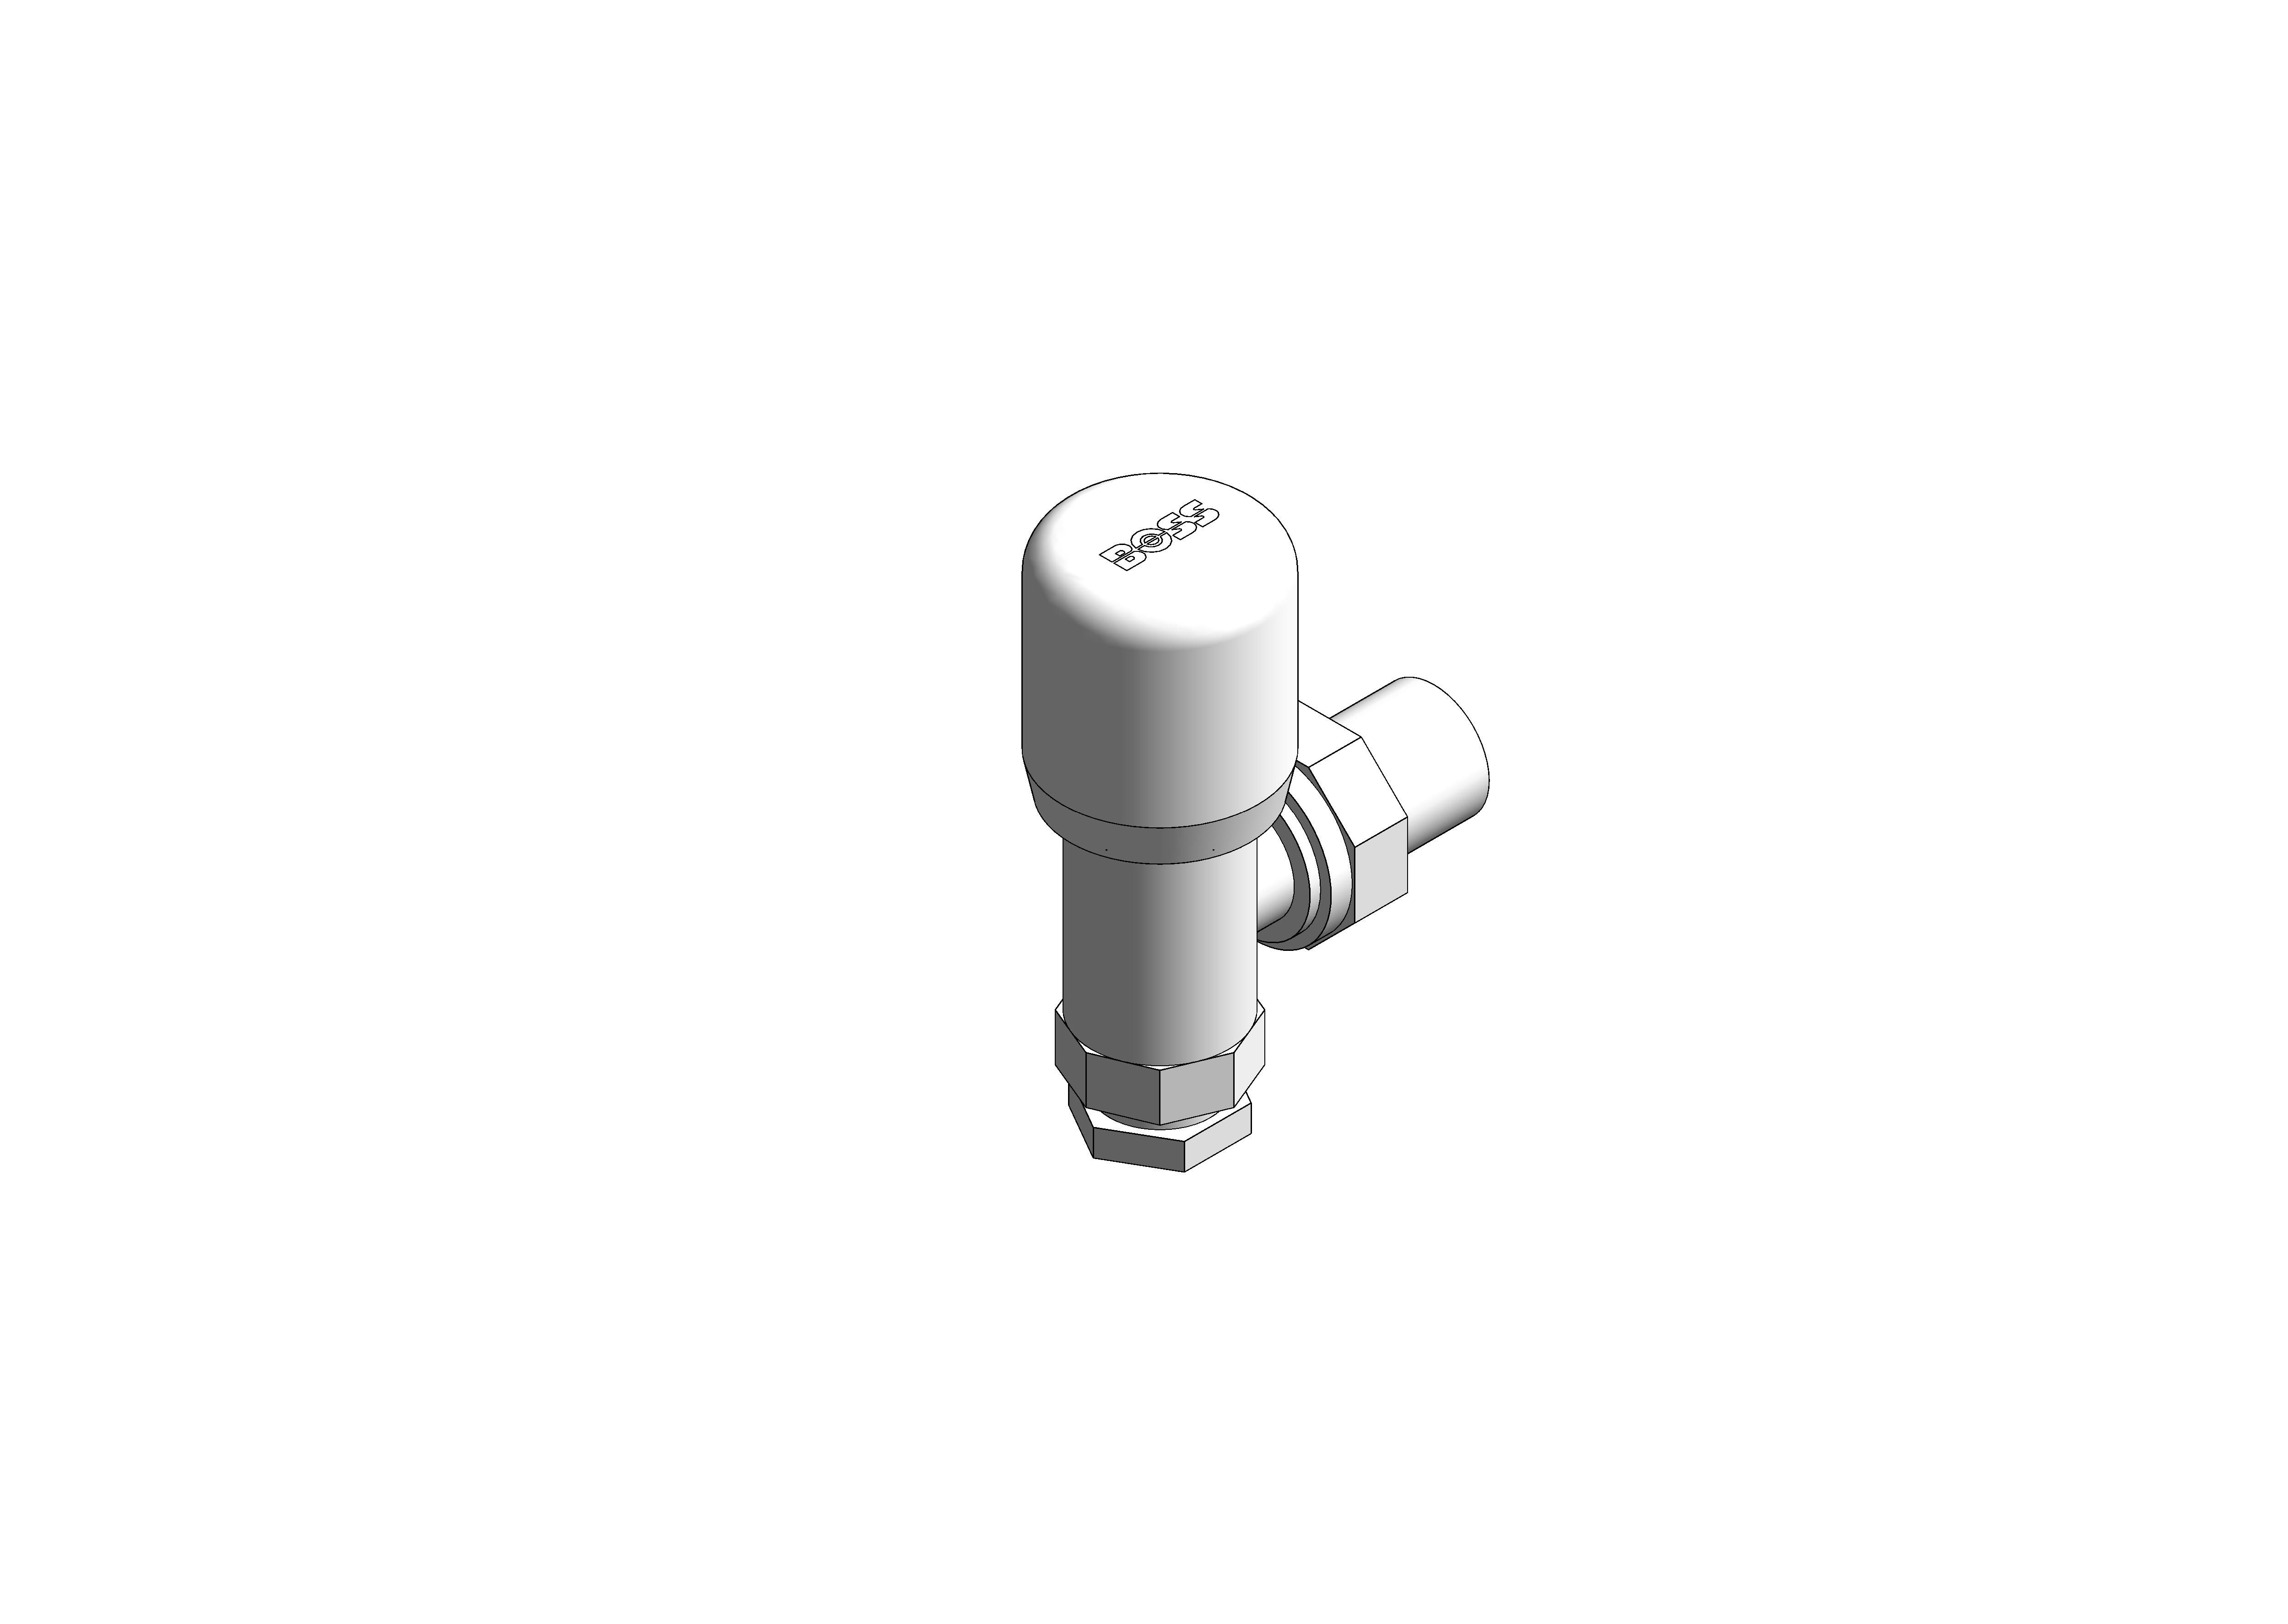 Product: Angle Valve CPWH MRV